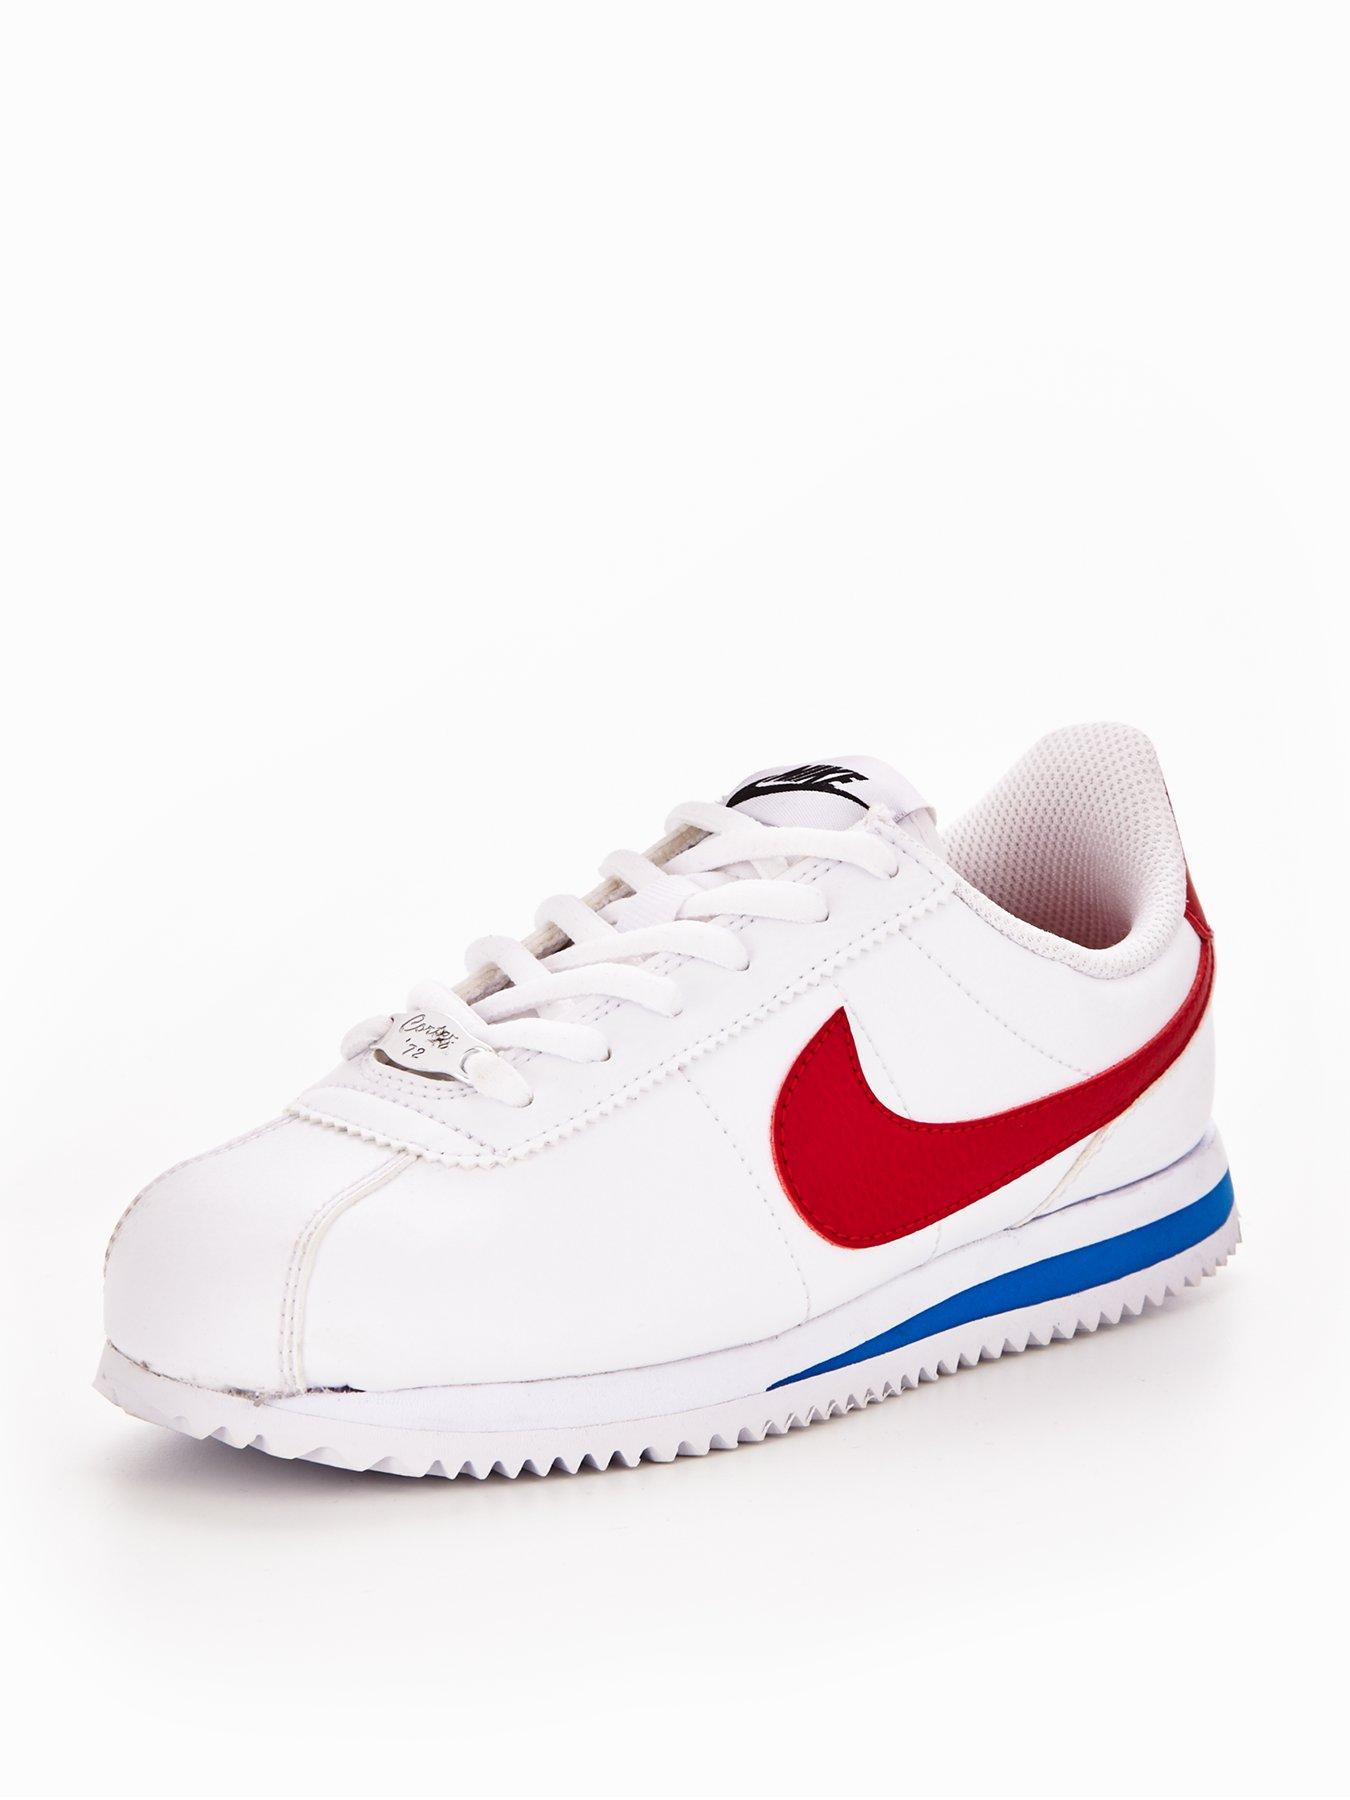 best website a244c ea1d0 new style nike cortez leather junior trainers white red blue 9a8a2 13c5b